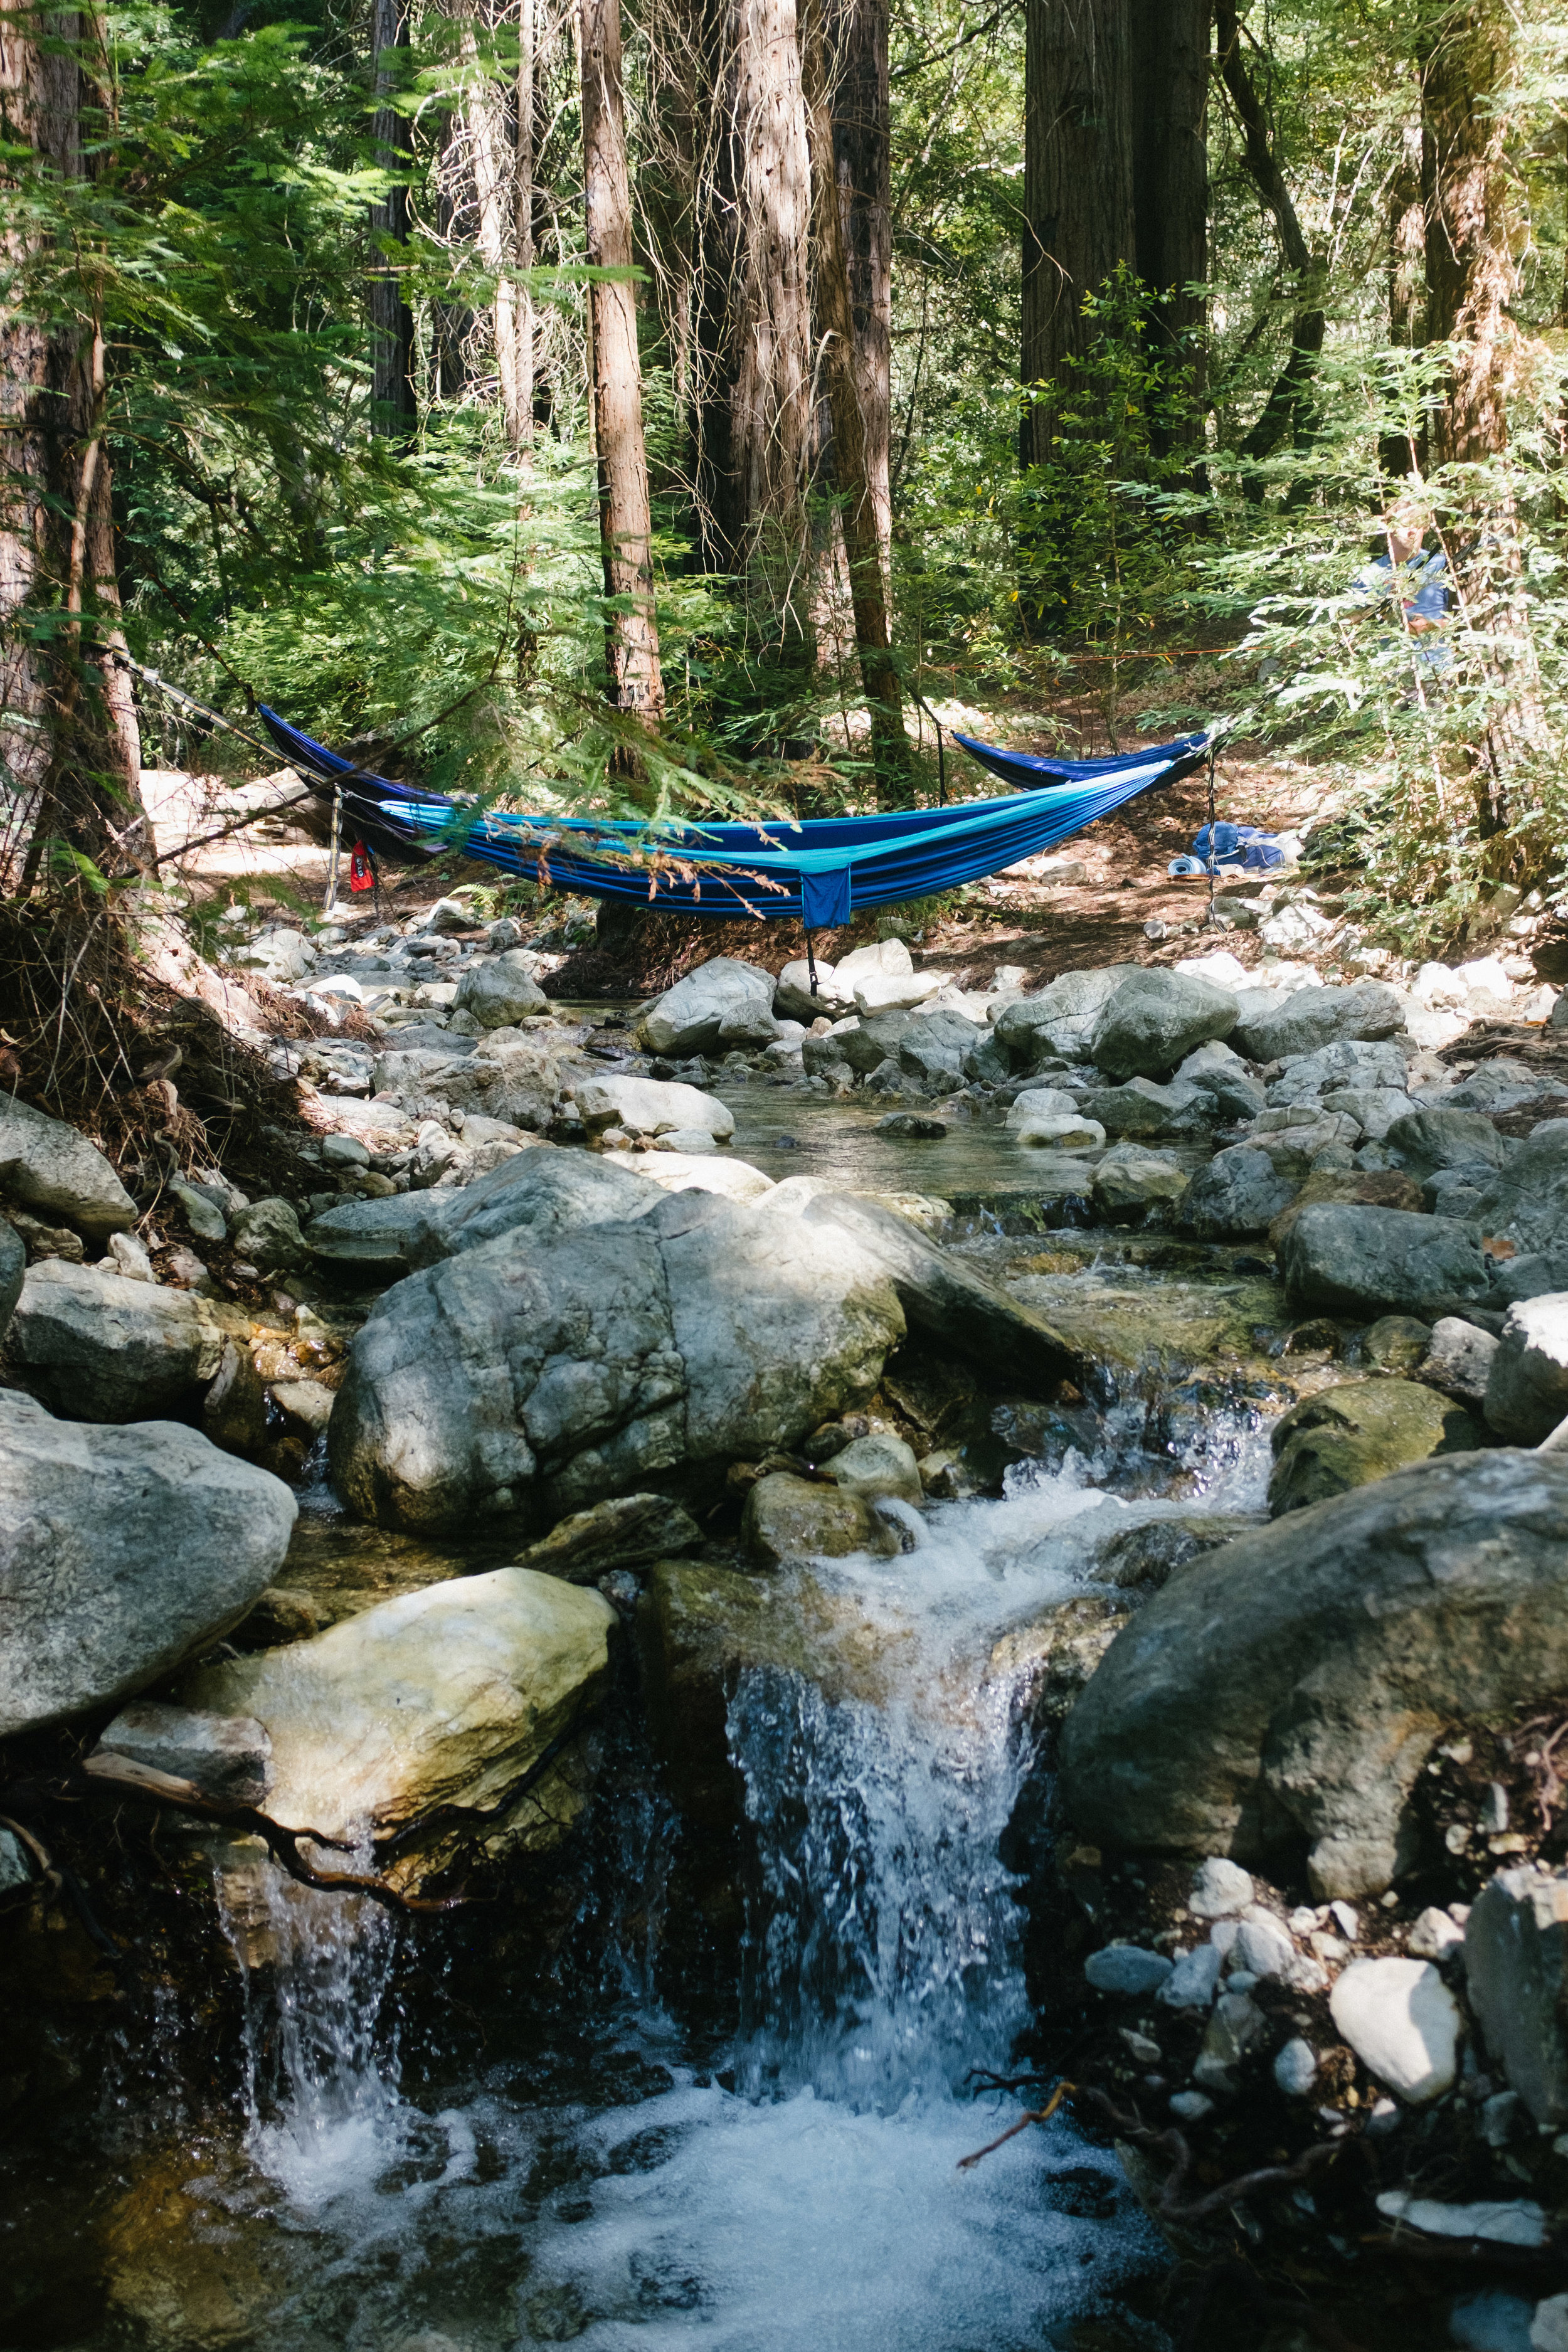 Our hammock setup/campsite. The weather was overall really great for hammocking - 70s during the day in the shade and 60s at night (I didn't even use a sleeping pad).